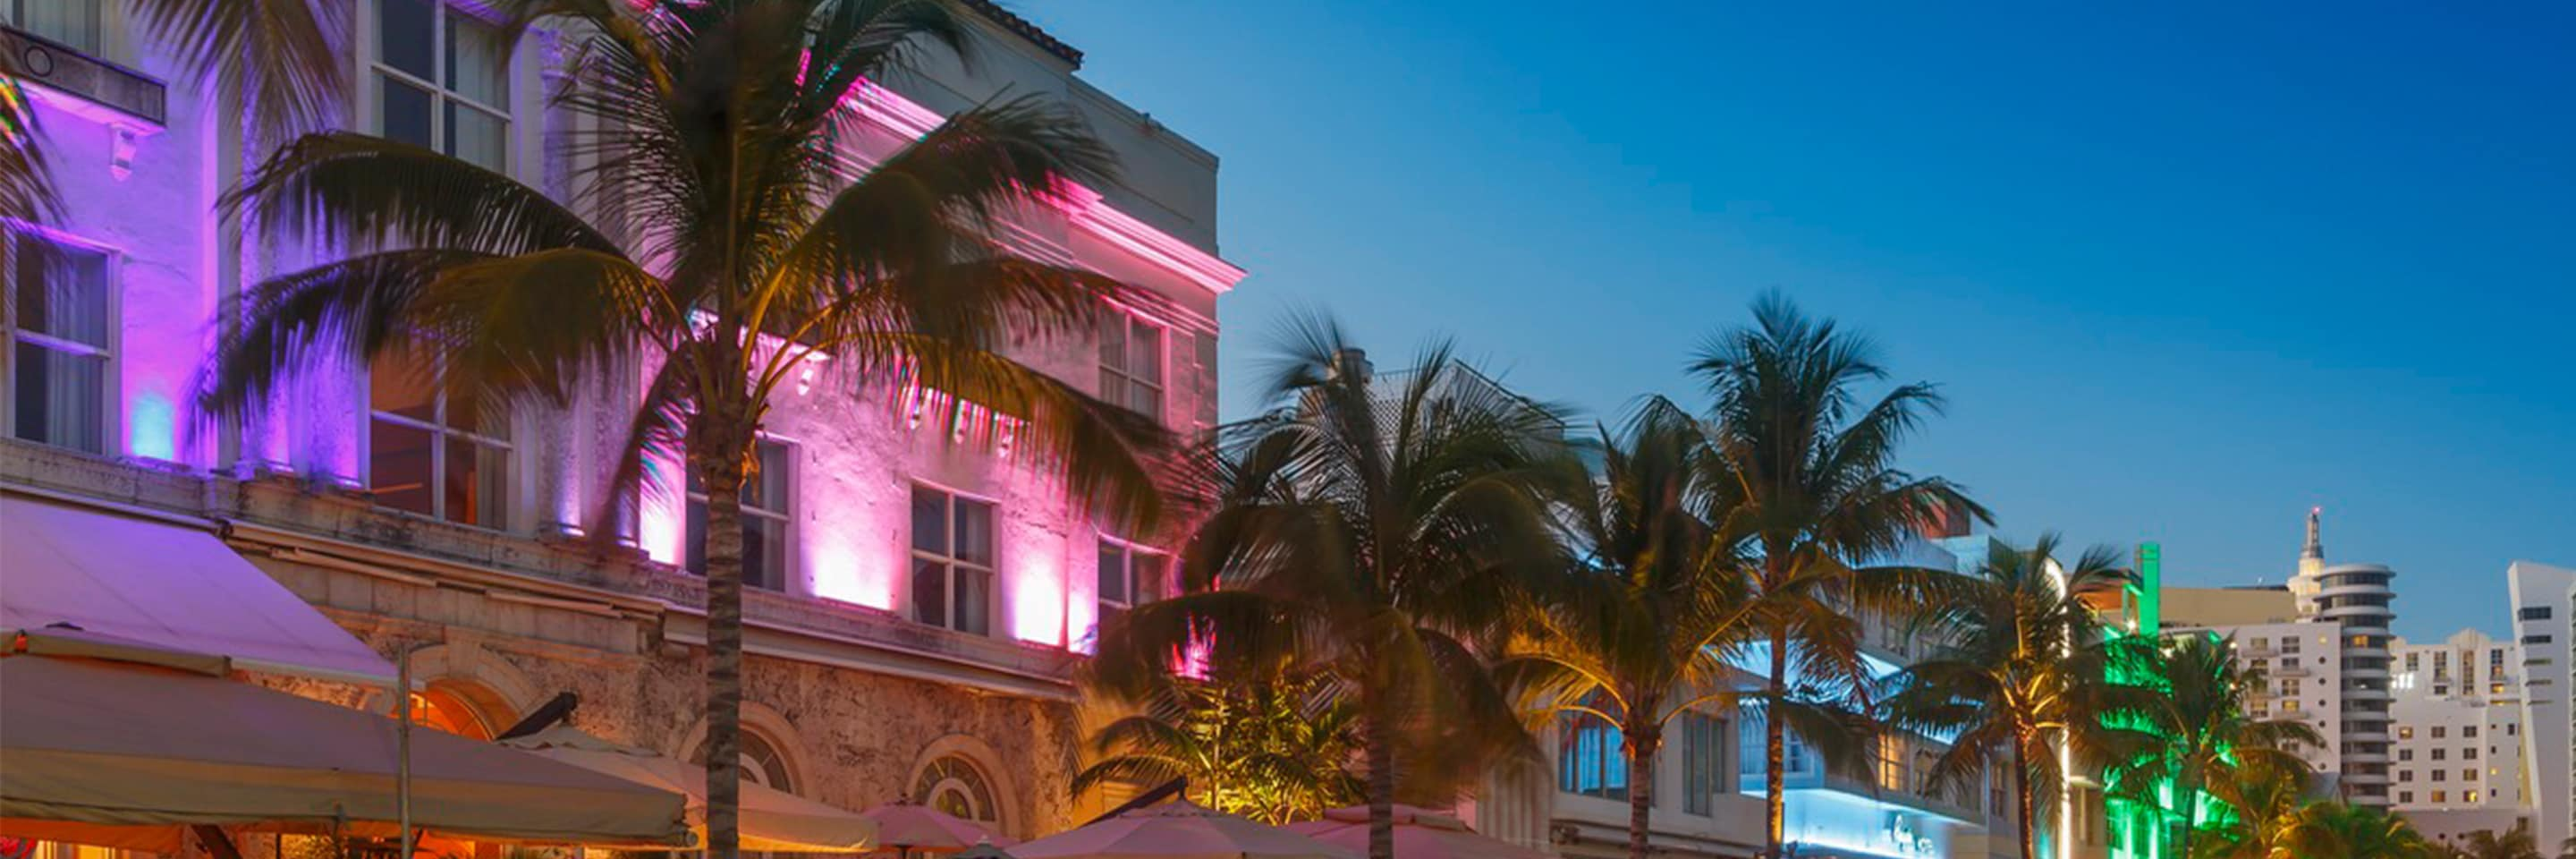 Boxing Day  Miami Hotels Hotels Deals